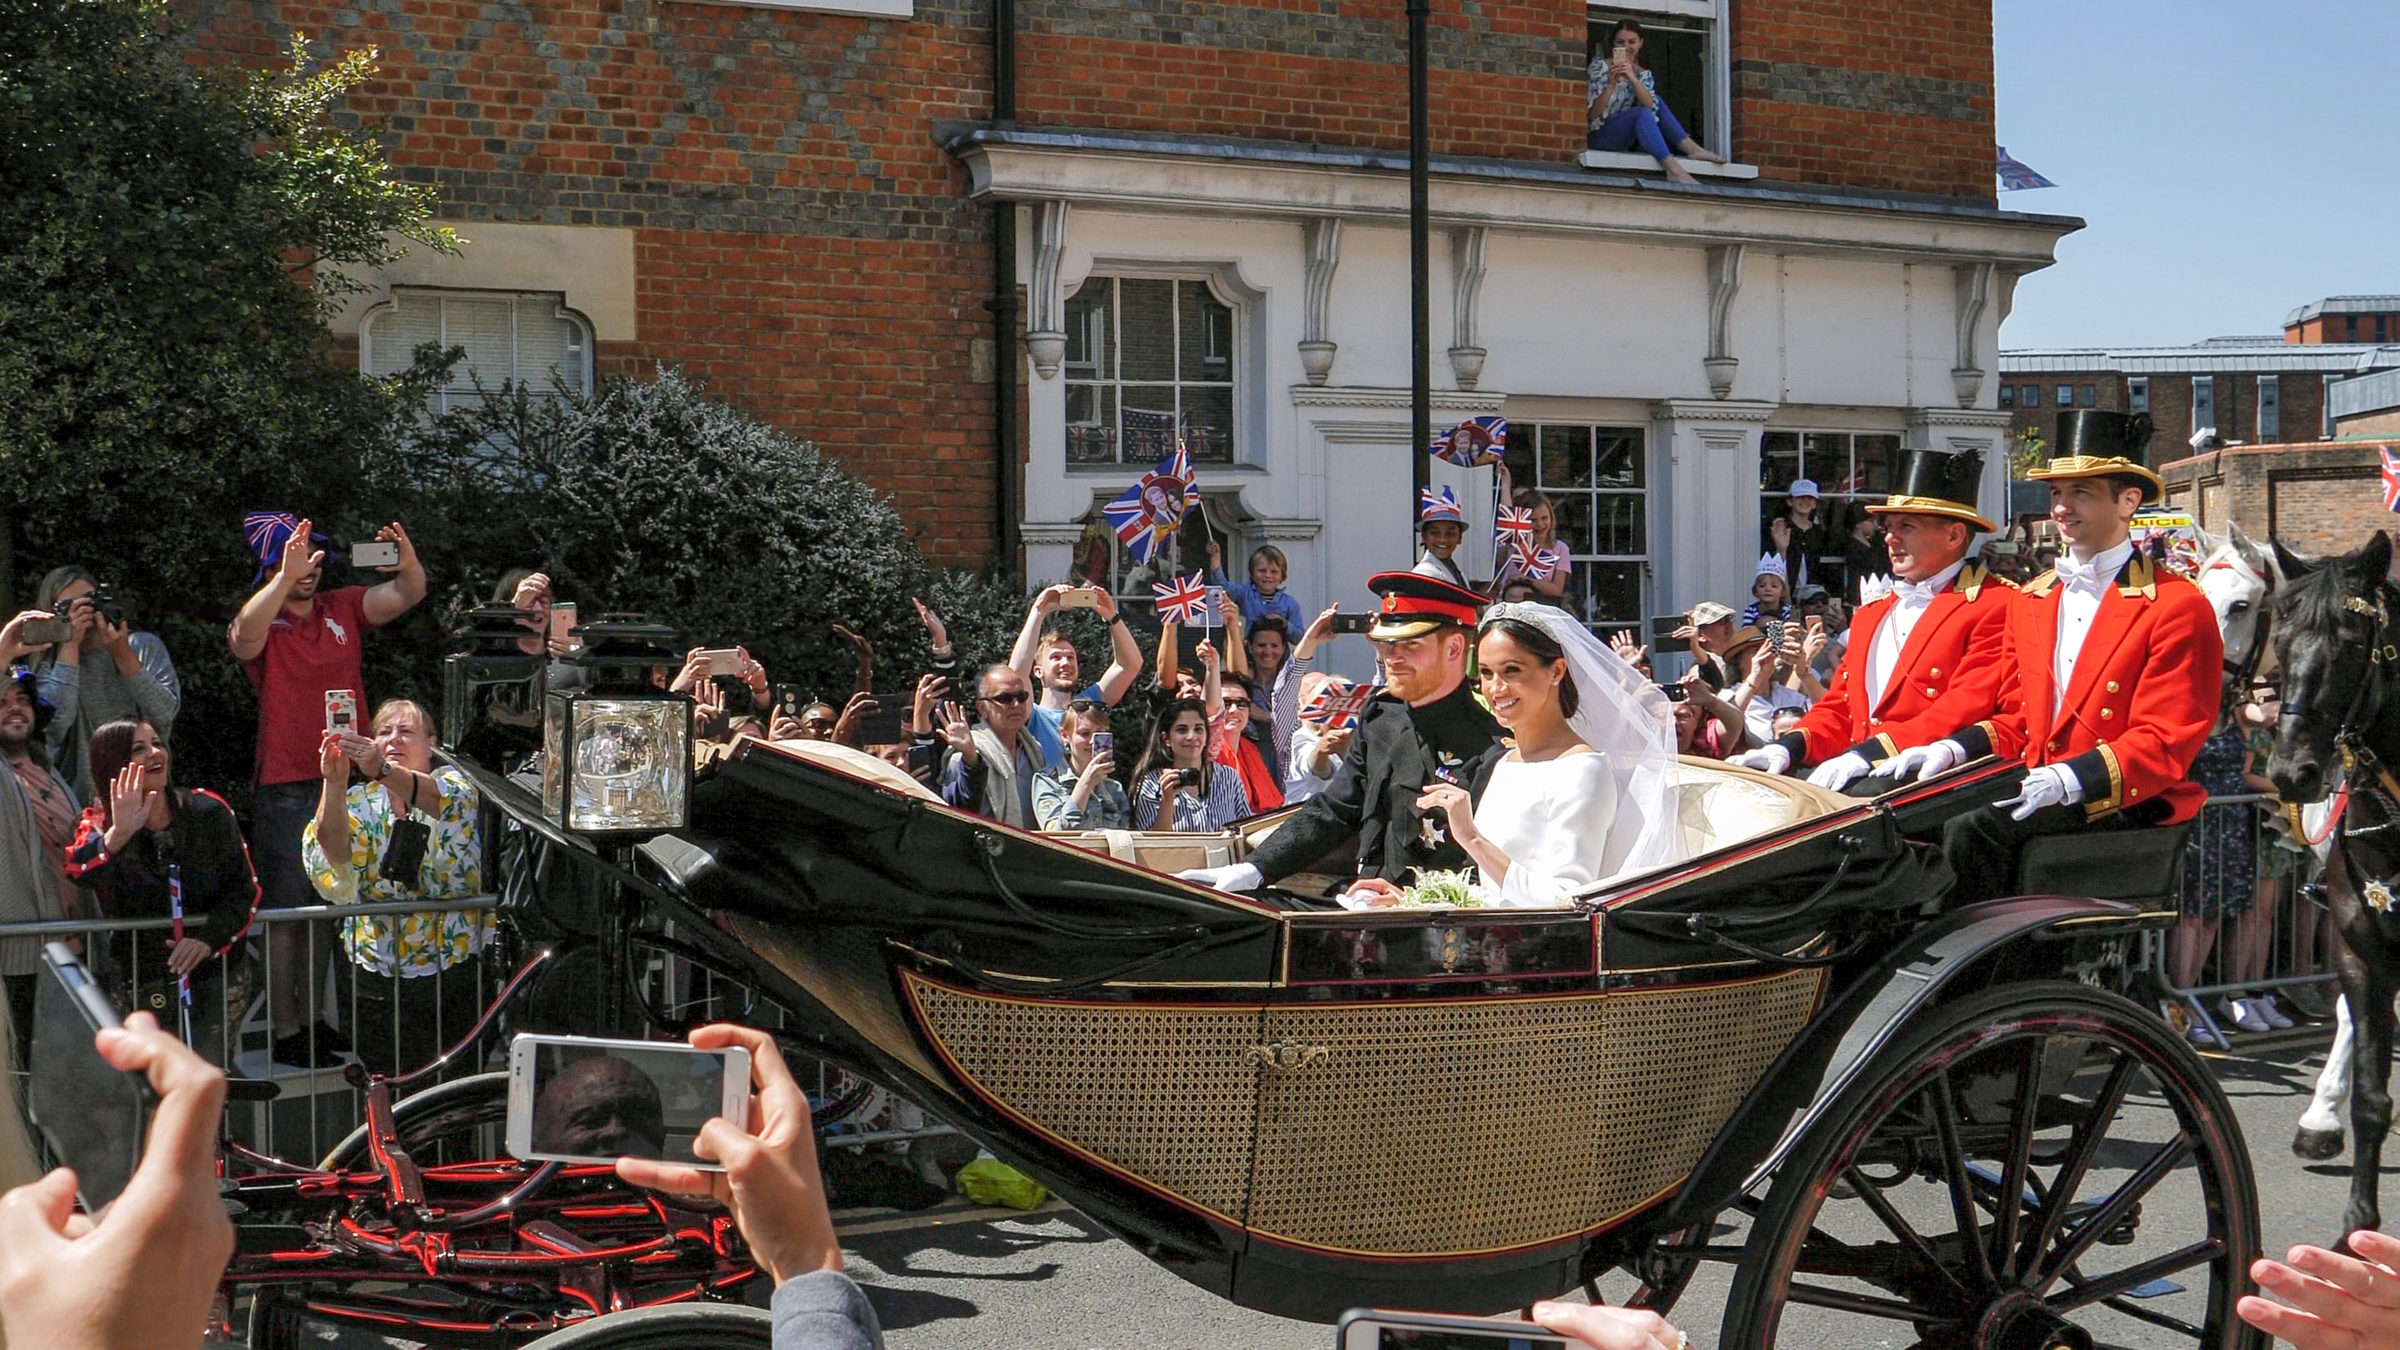 Prince Harry and Meghan Markle greet fans in carriage following royal weddings